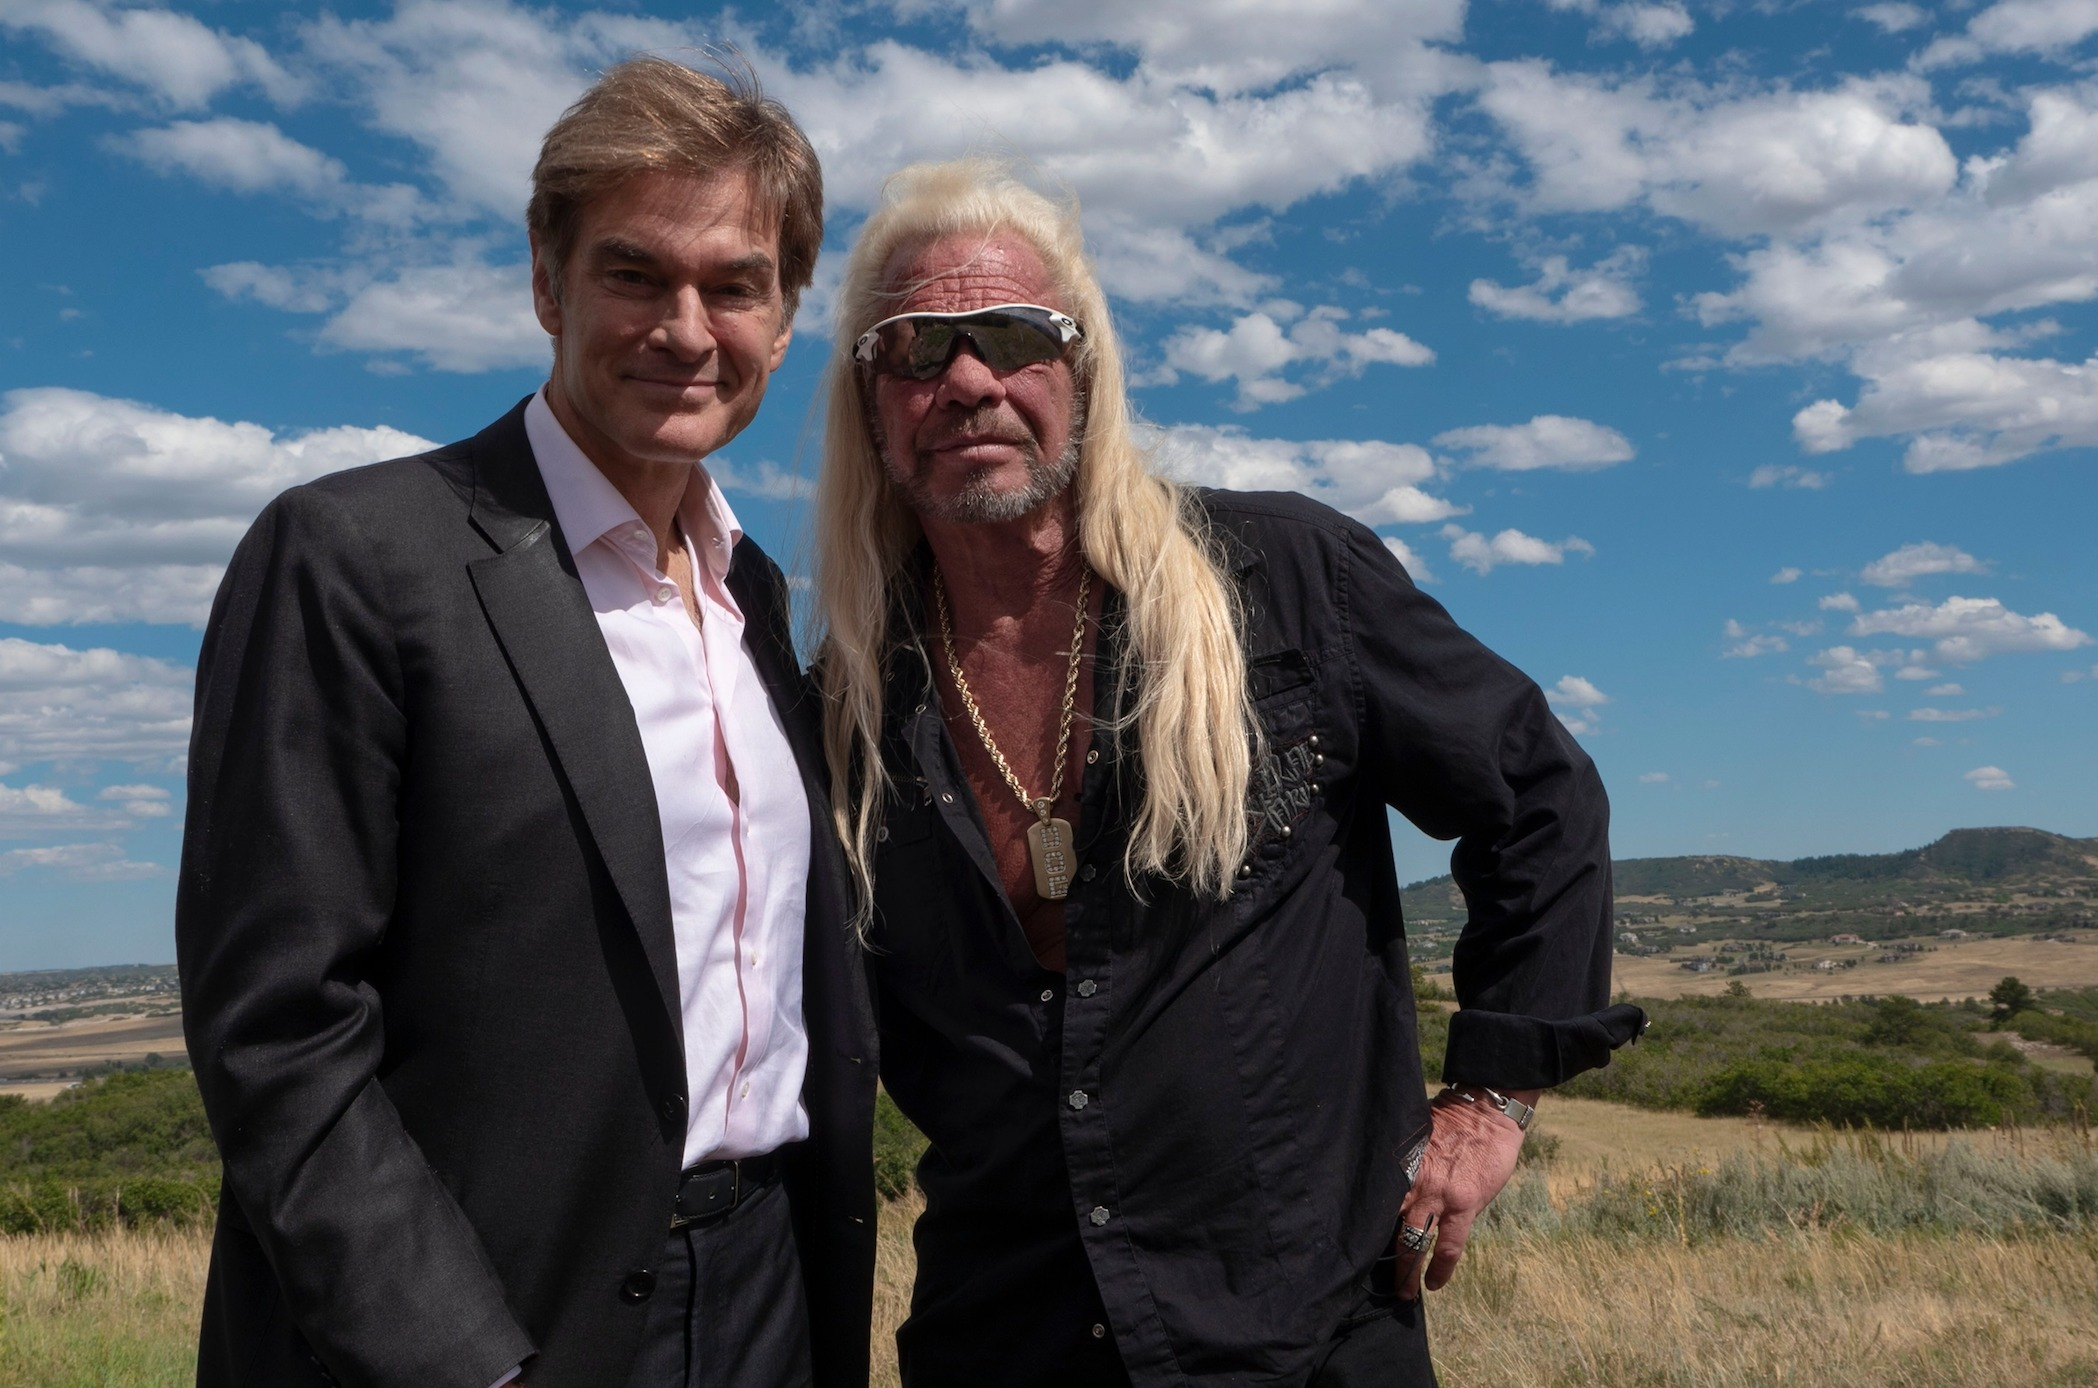 Dr Oz interviewed Duane Chapman in his house. The reality star confessed that he had denied care at the beginning but later received the diagnosis for his Pulmonary Embolism